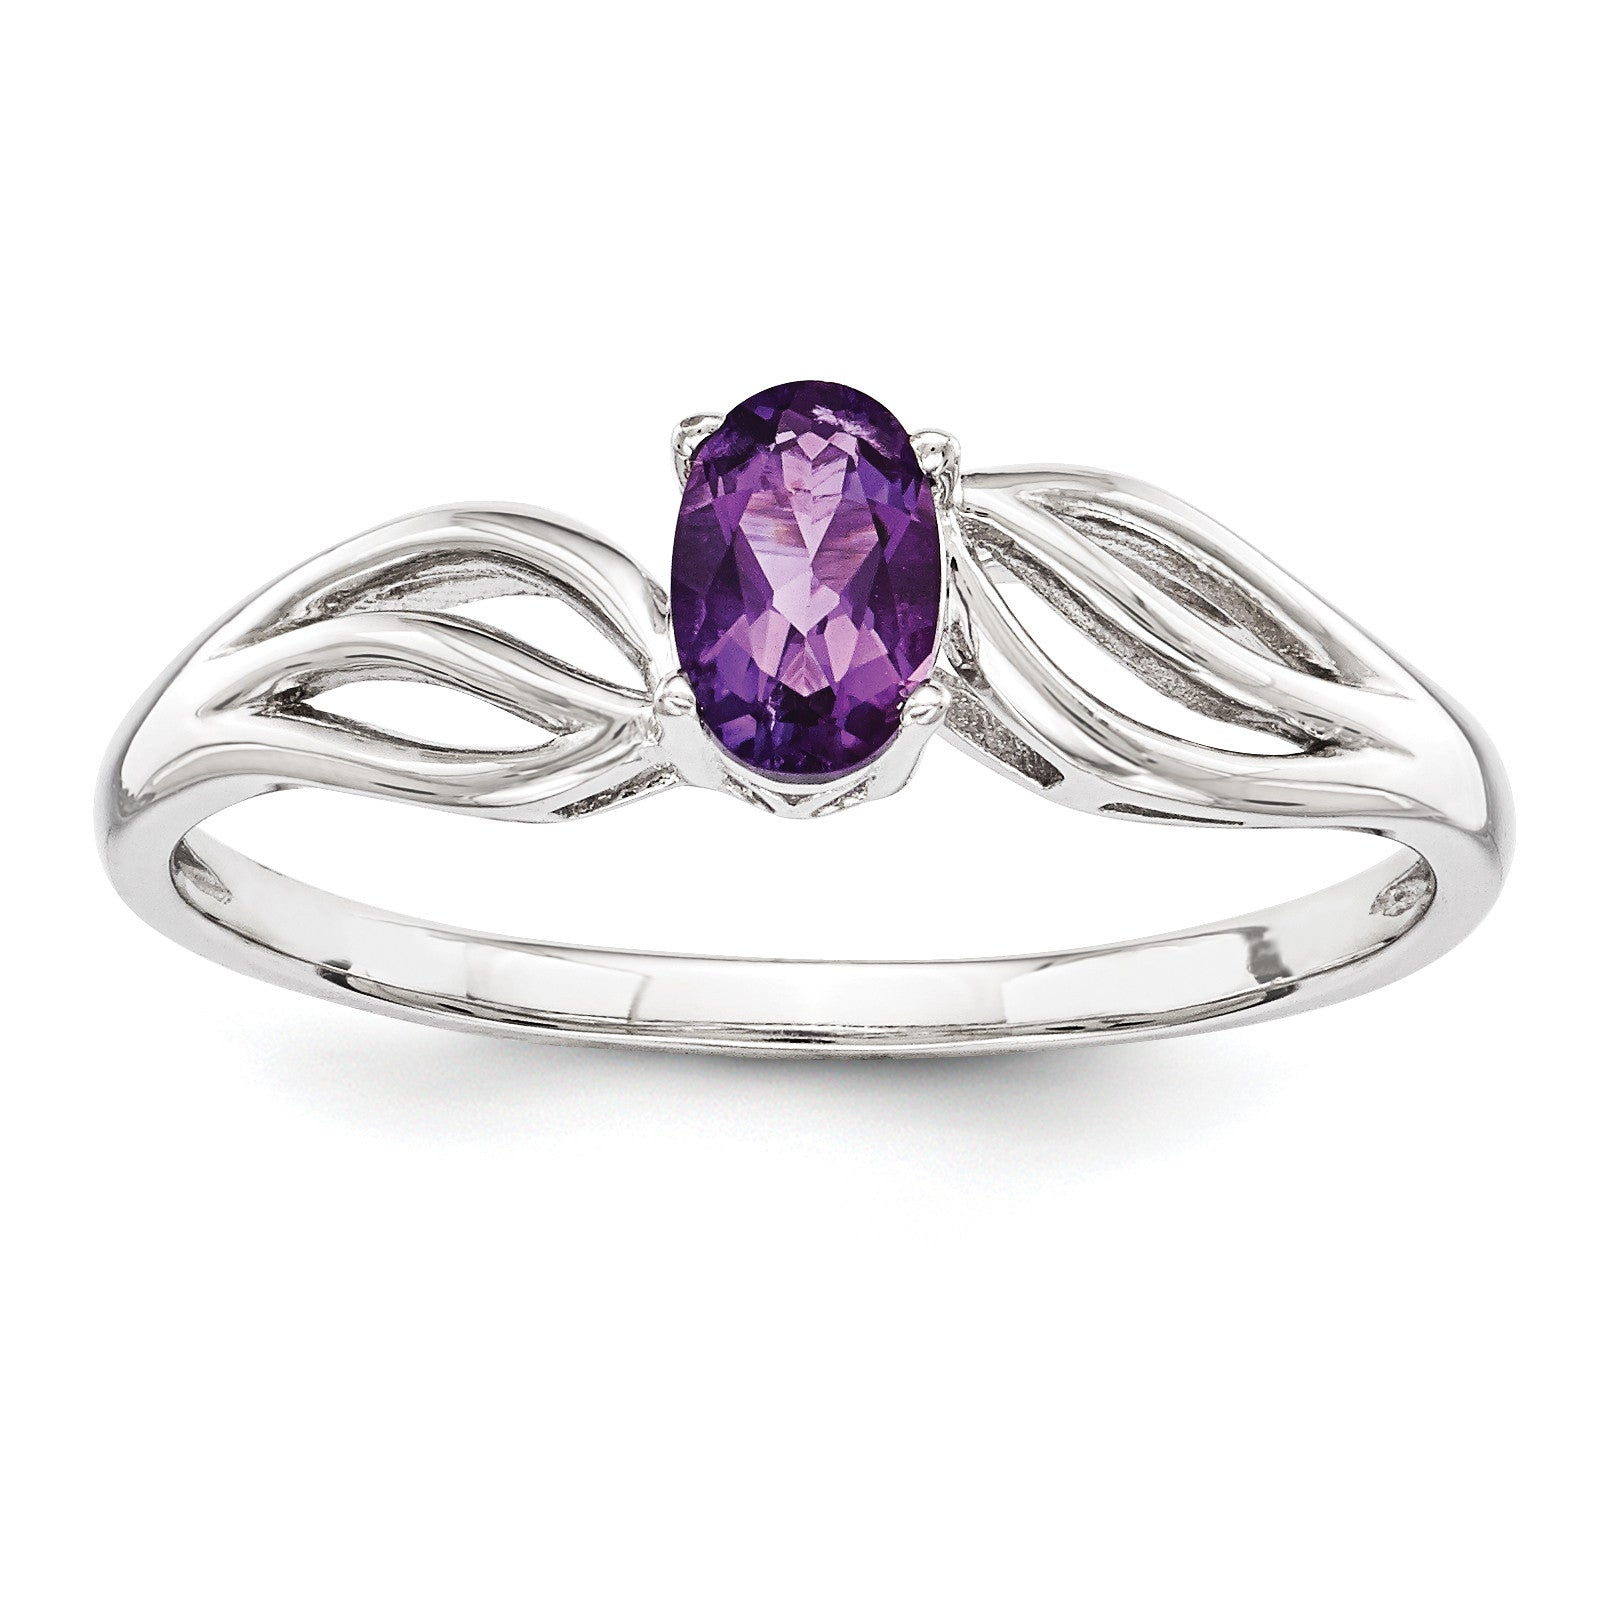 Sterling Silver Rhodium-plated Amethyst Ring QBR17FEB - shirin-diamonds